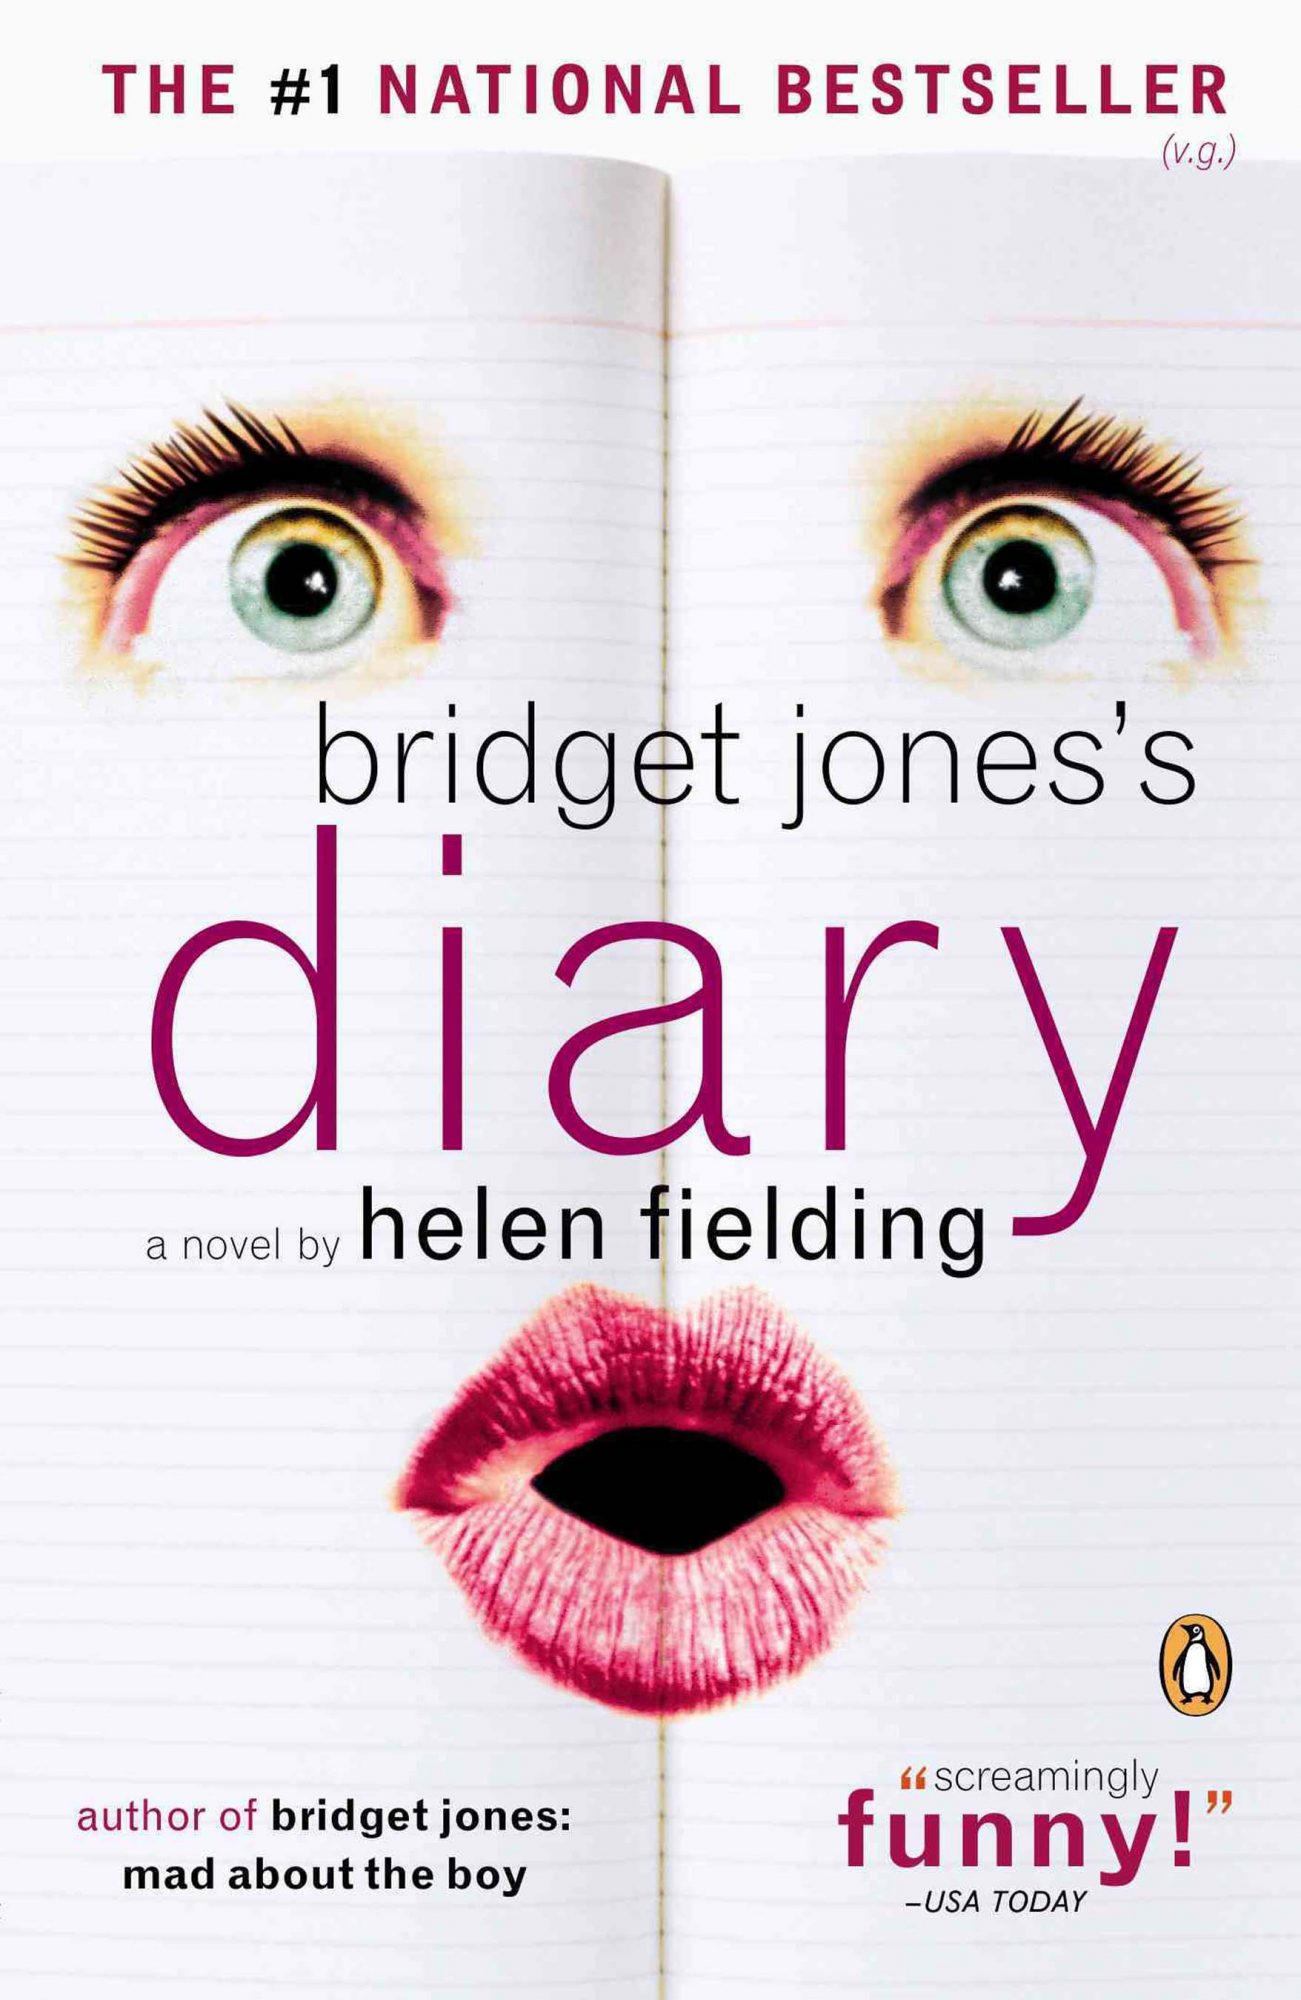 Bridget Jones's Diary by Helen Fielding